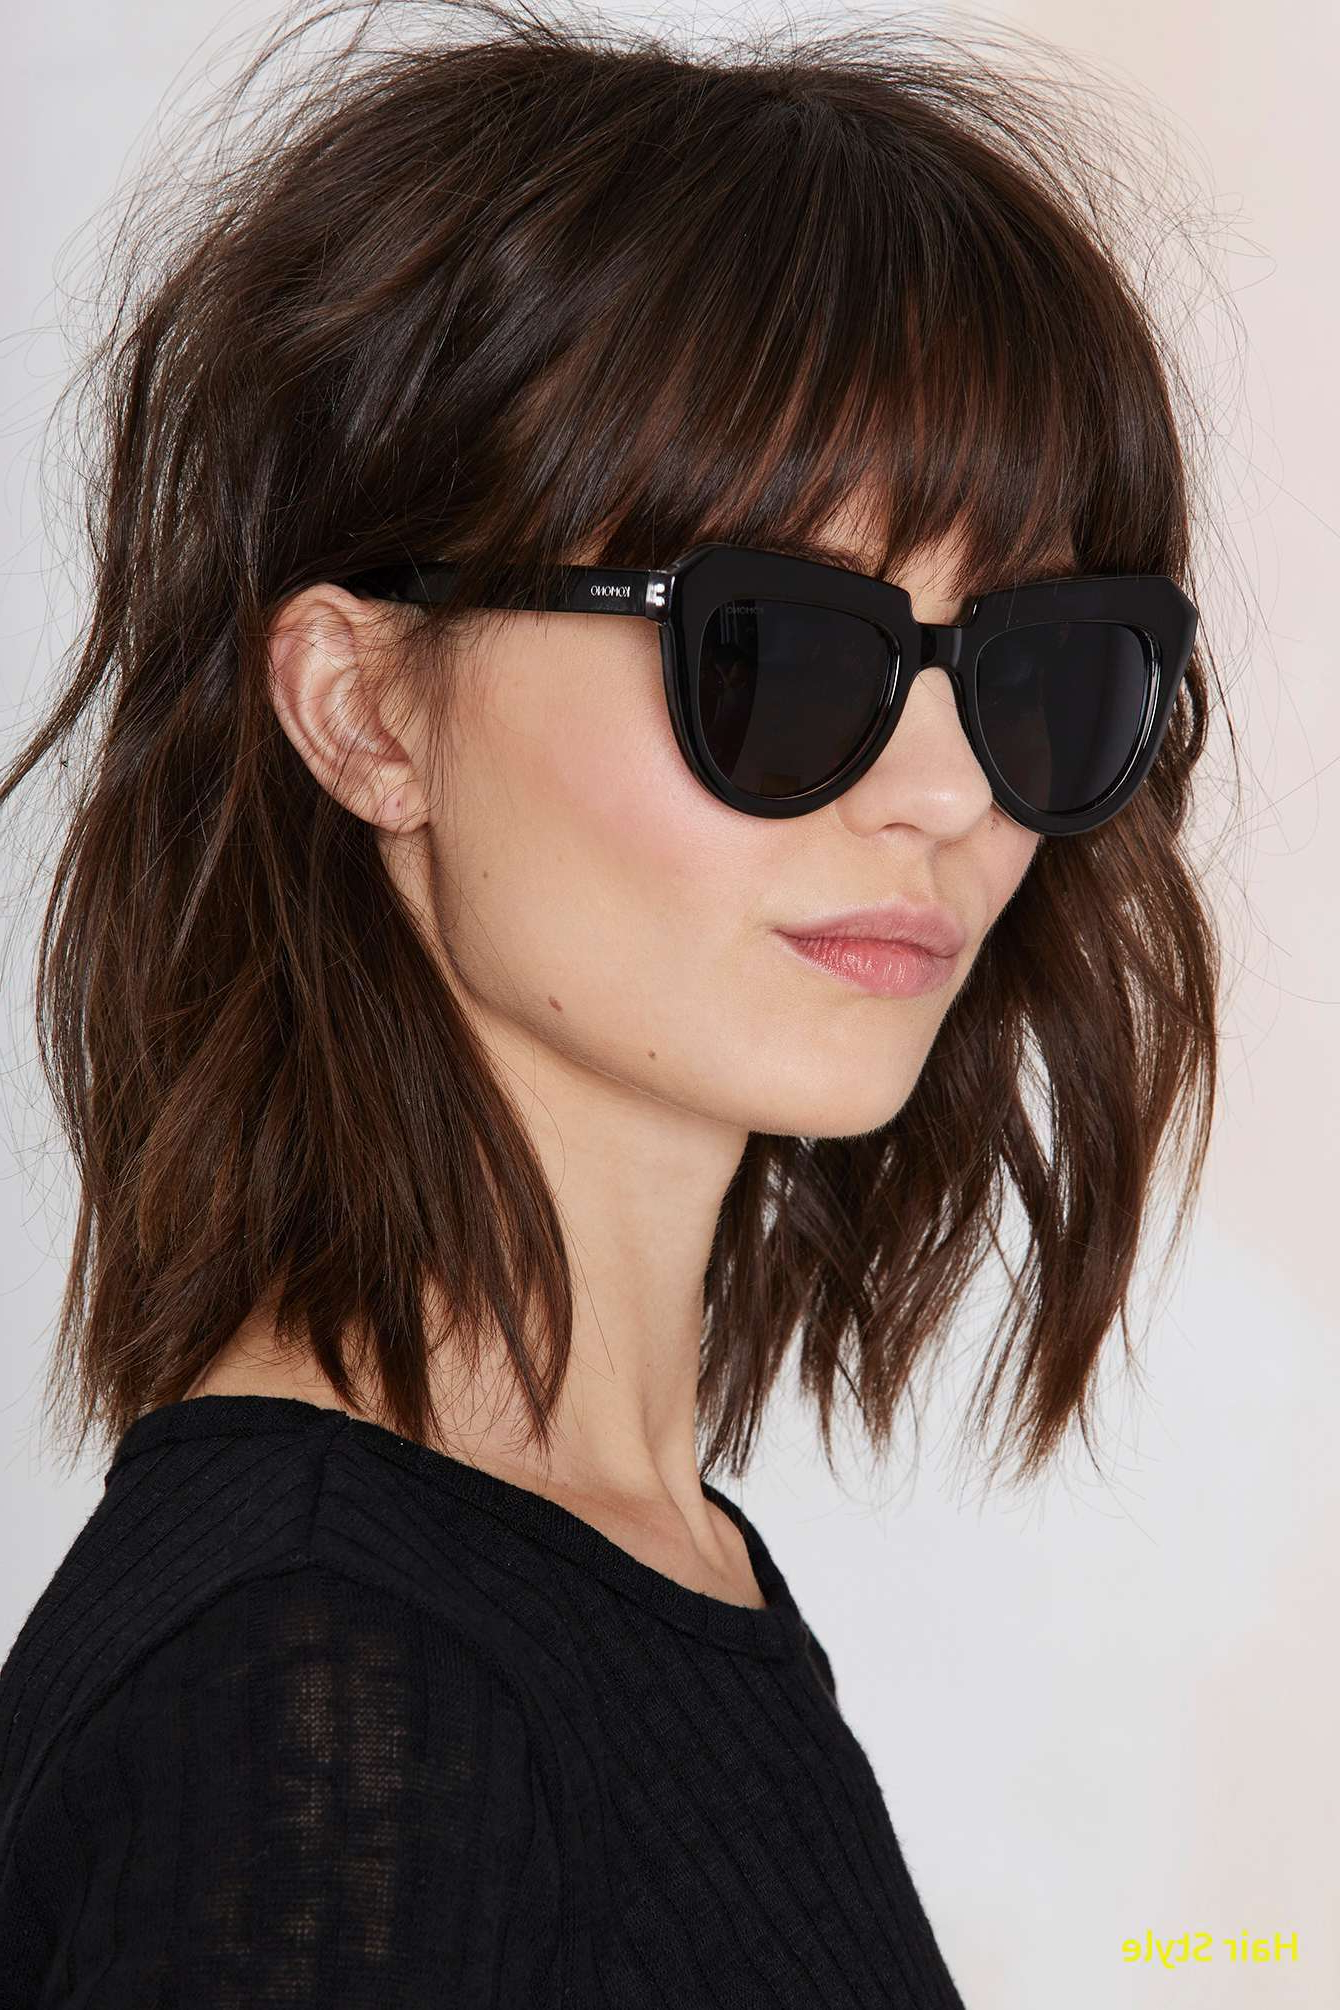 New Short Hairstyles With Glasses | Best Hairstyles throughout Short Haircuts With Glasses